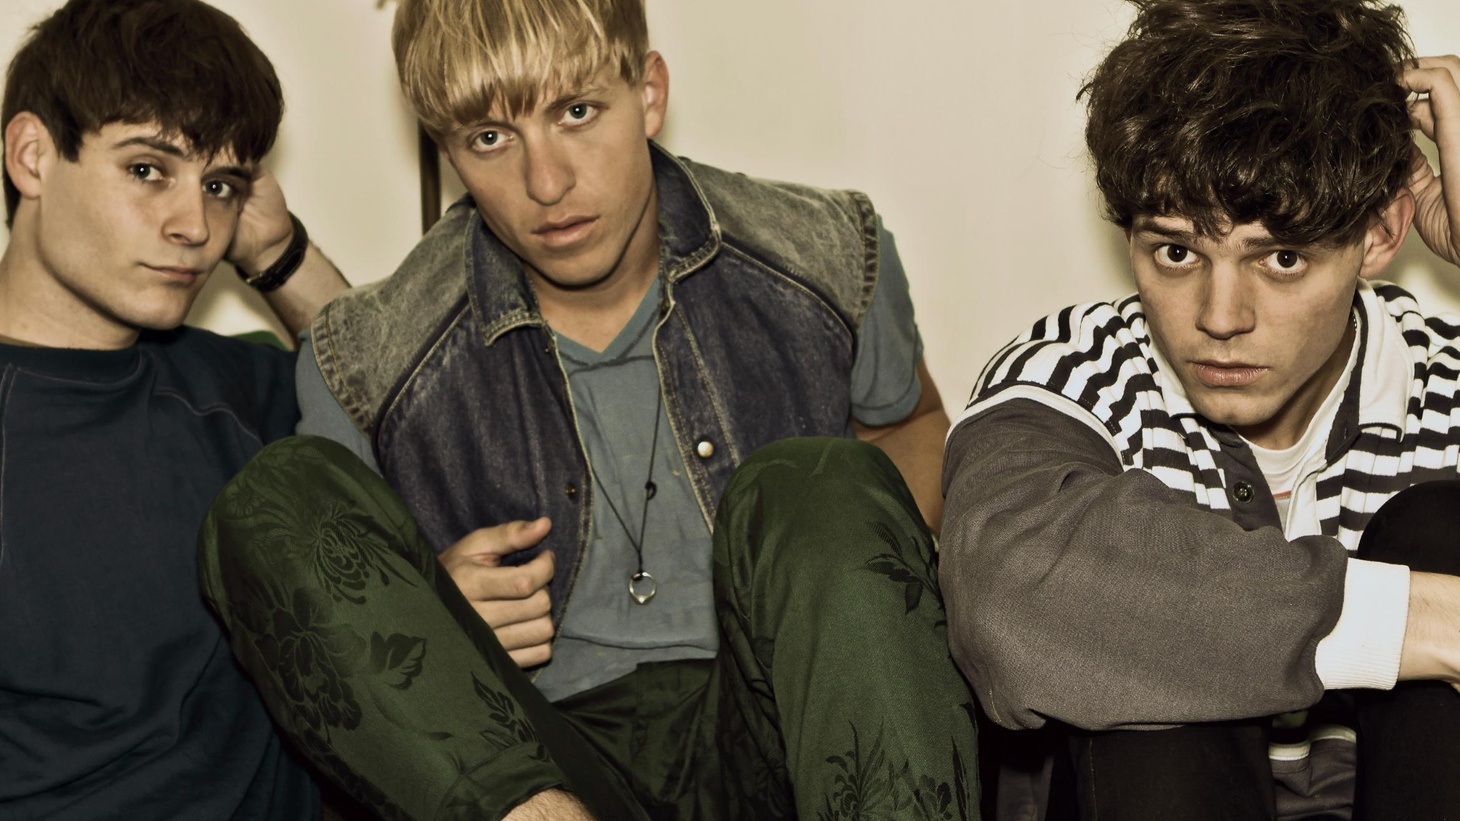 The Drums' debut album generated a lot of buzz in the blogosphere, but their follow-up is even better...